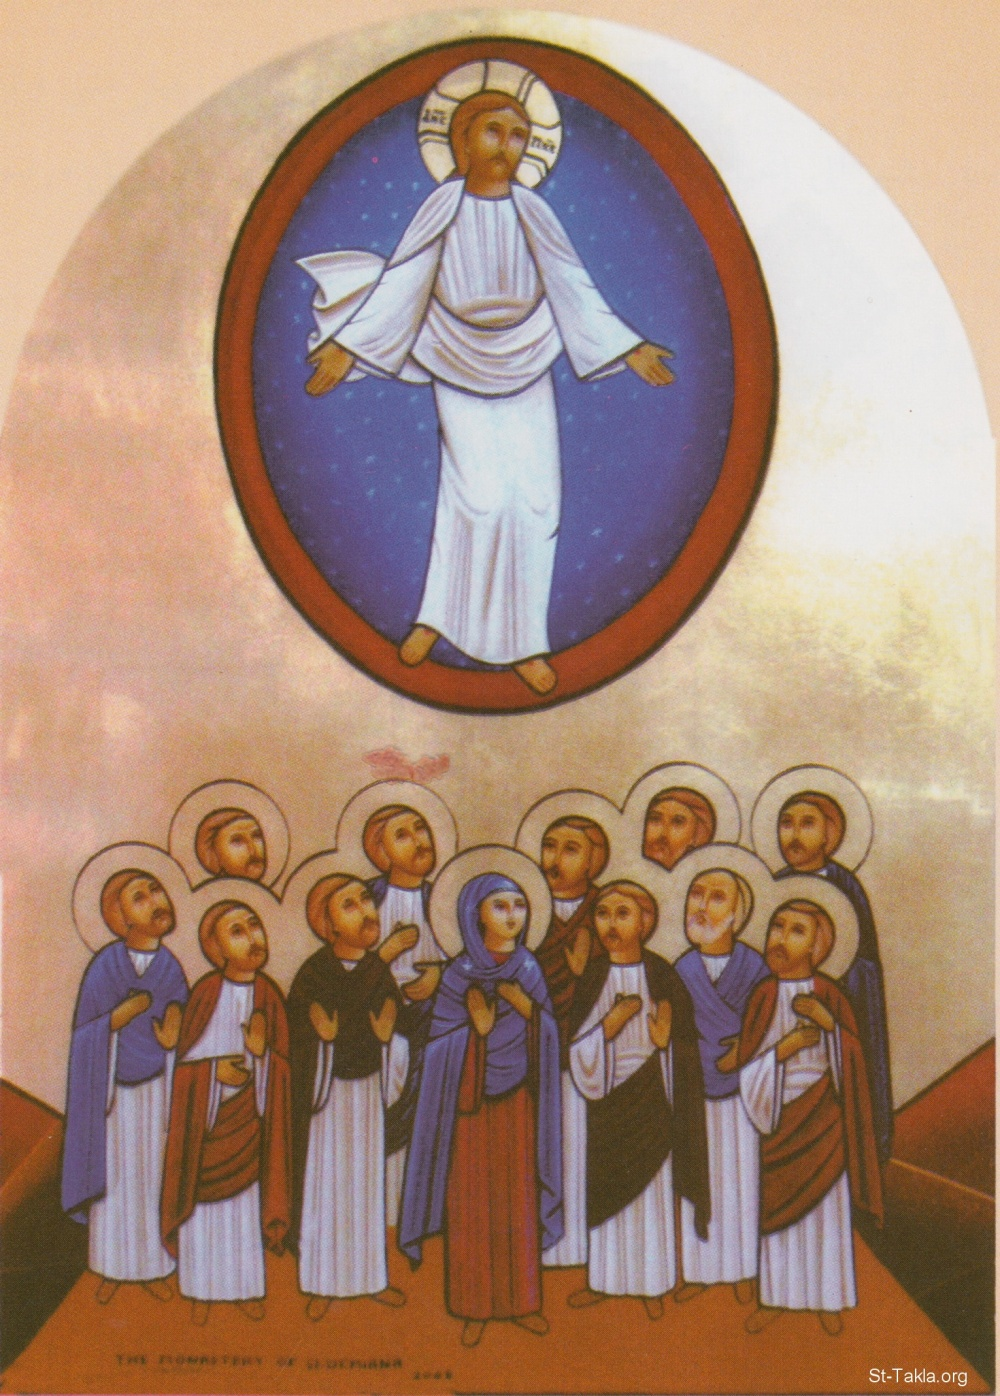 www-St-Takla-org--Damiana-Monastery-icon-Ascension